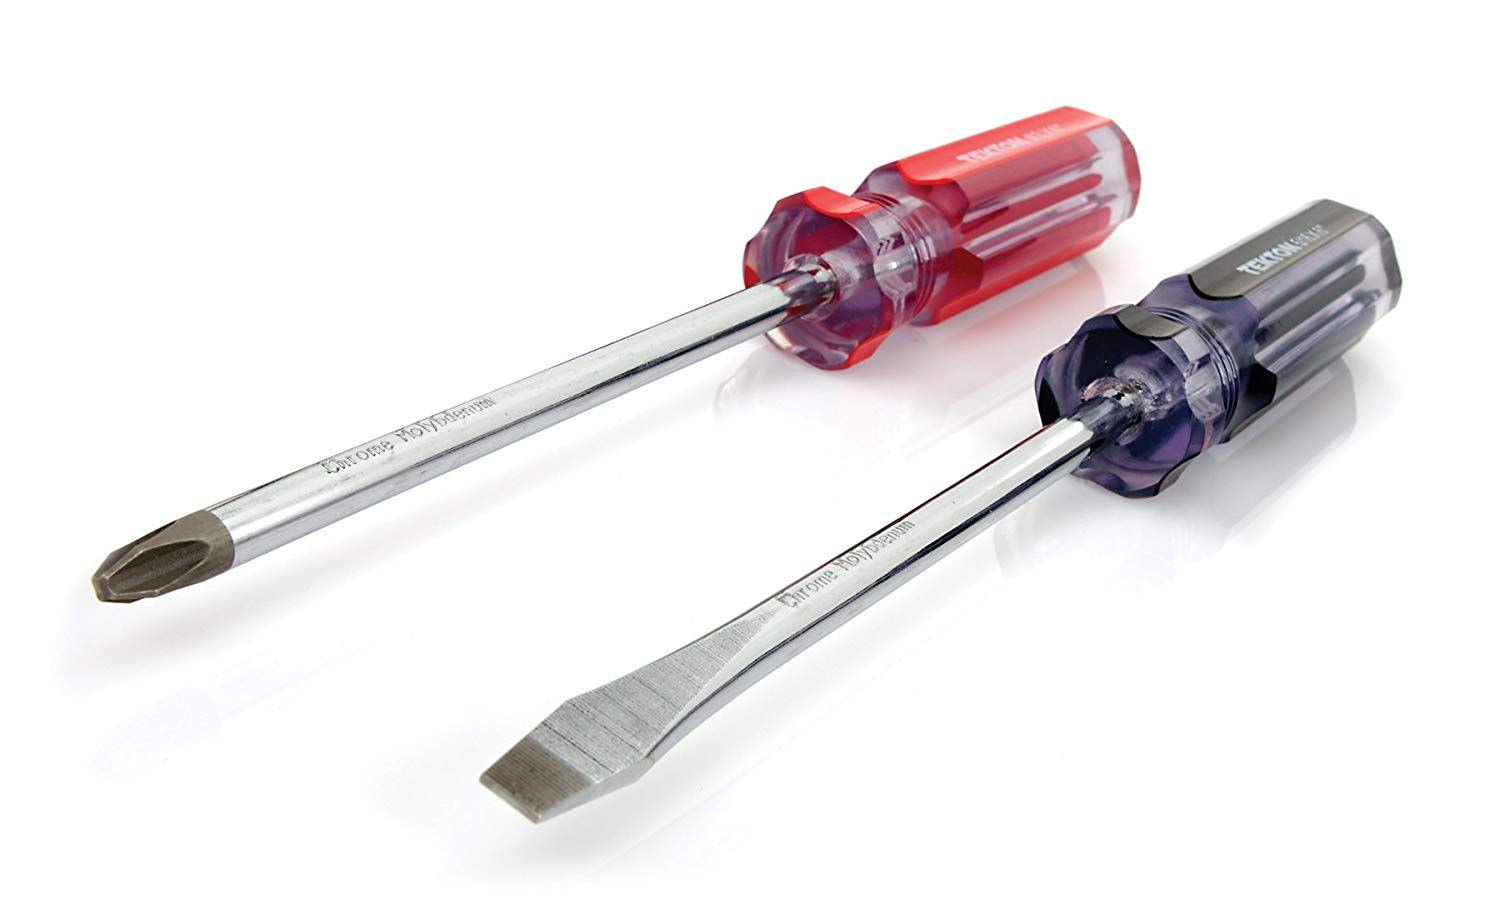 Phillips and flathead screwdriver